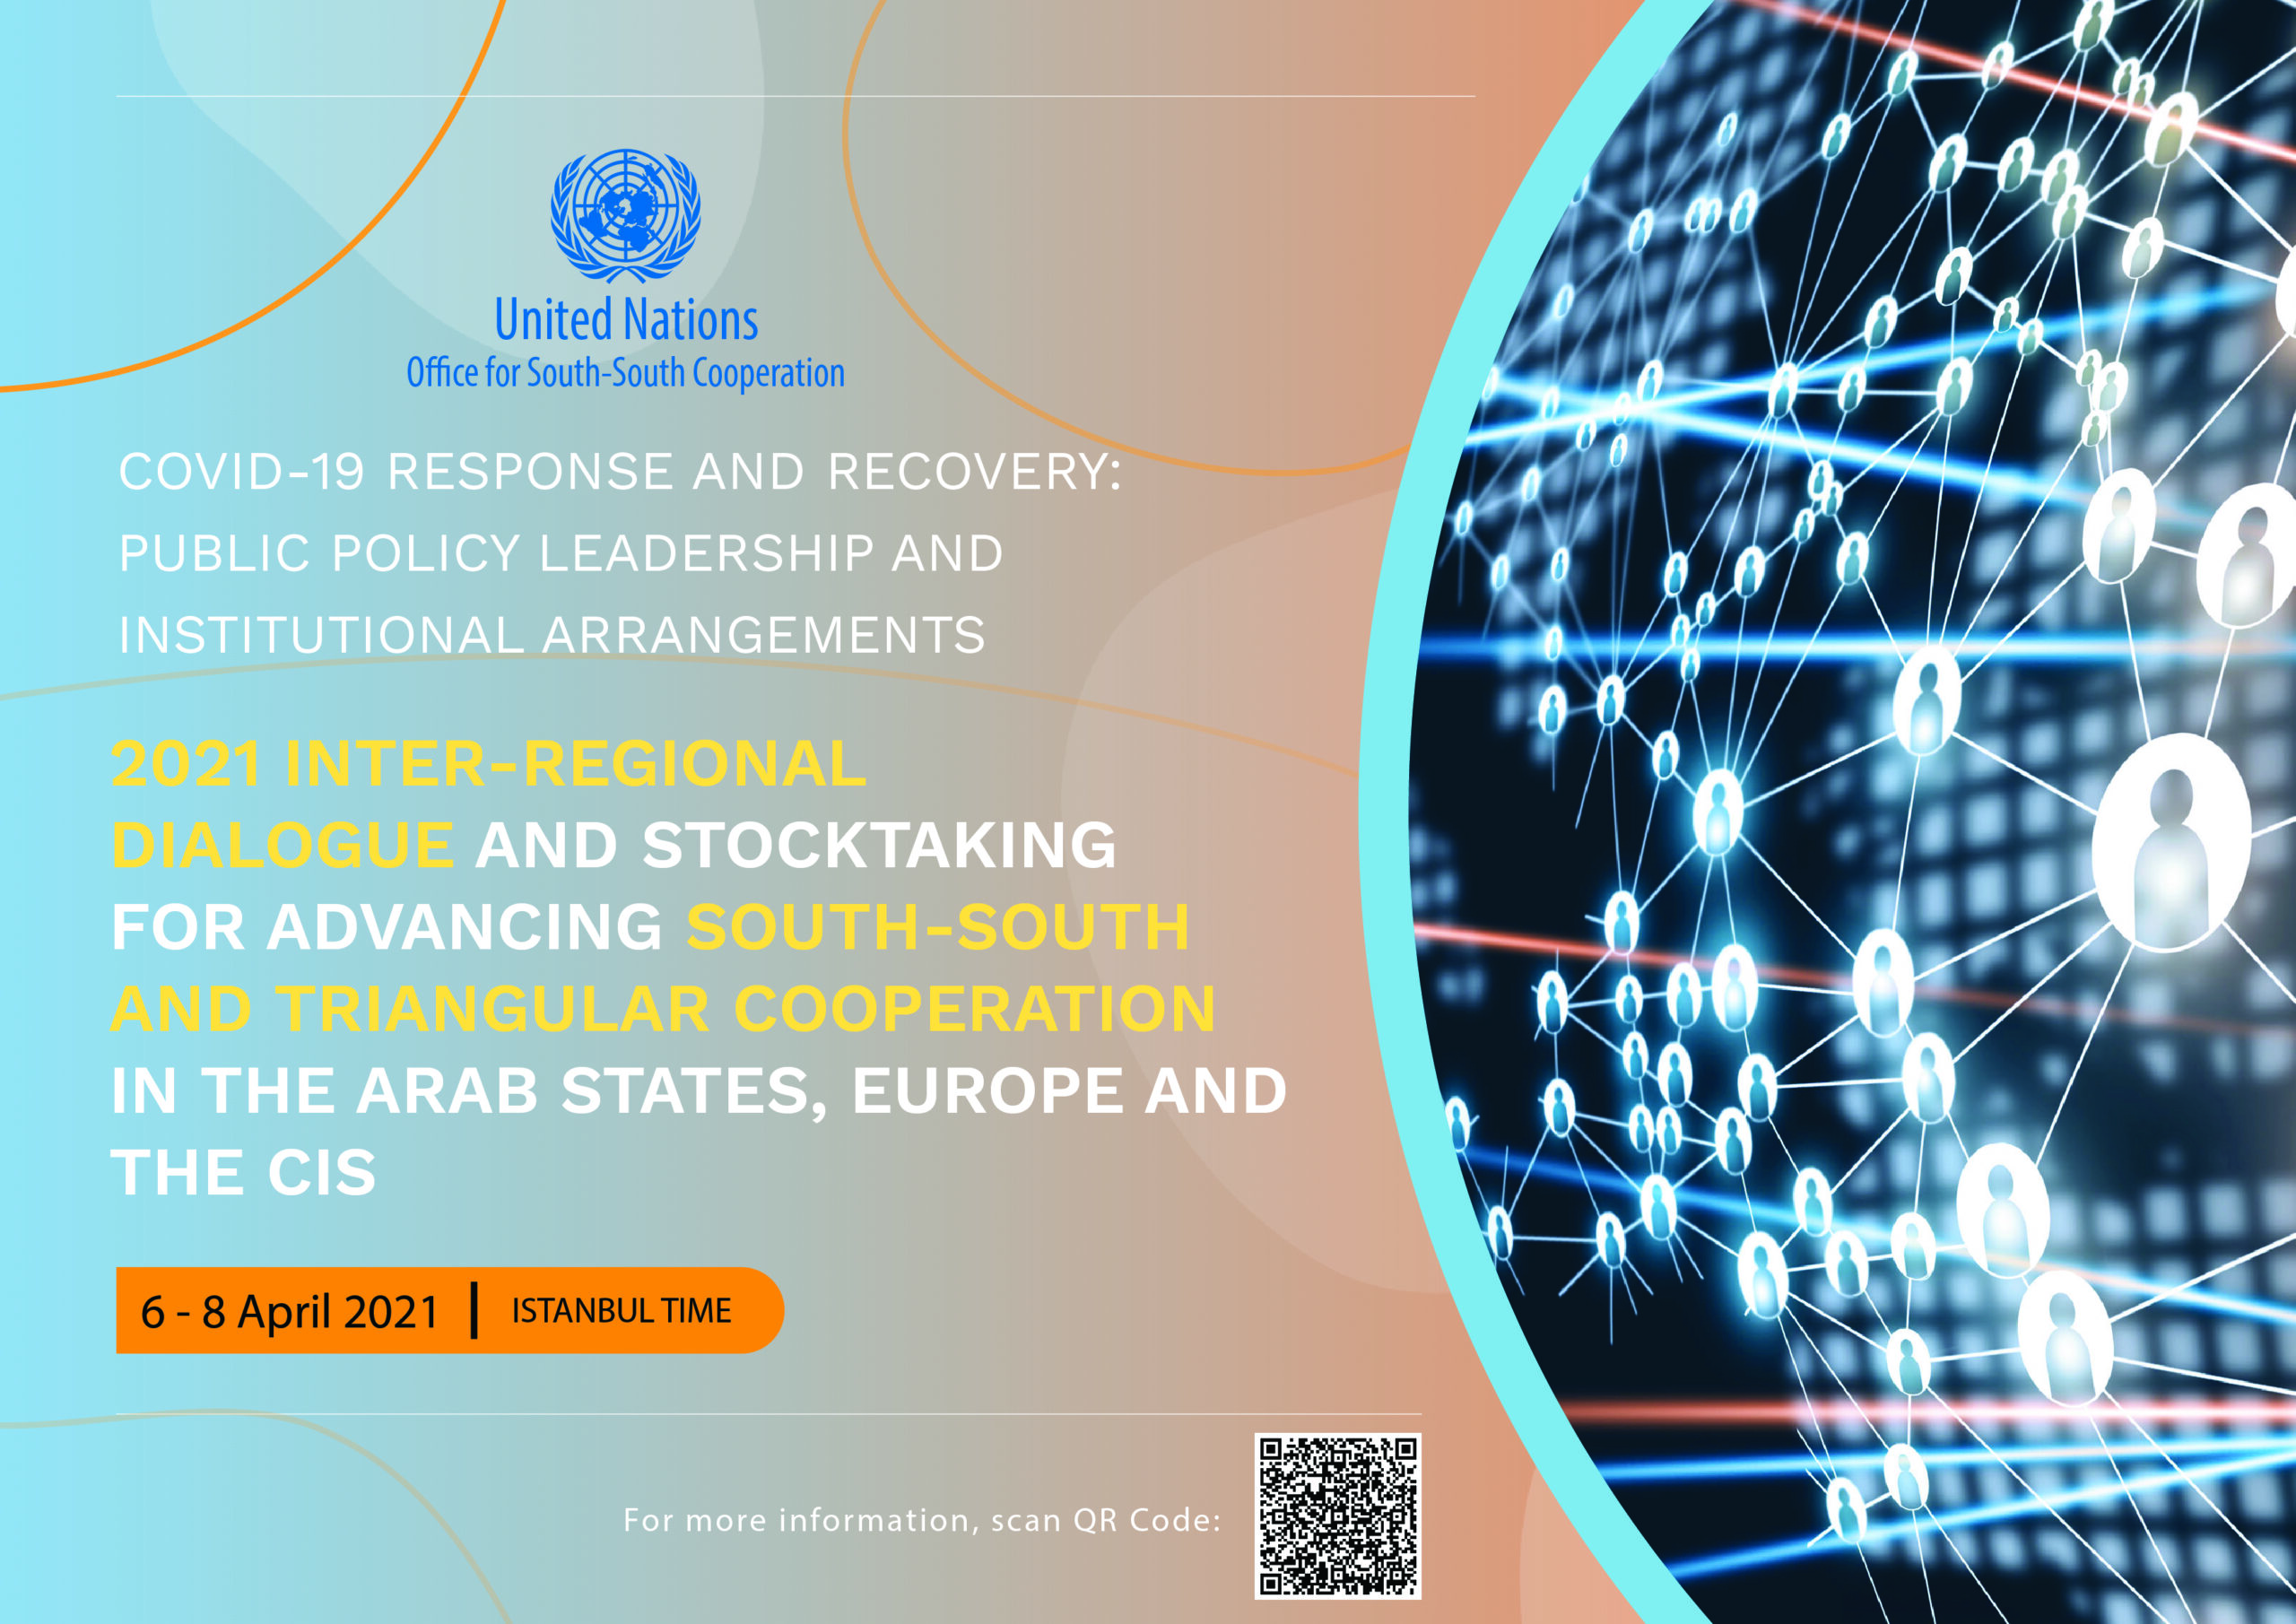 UNOSSC Virtual Inter-regional Dialogue and Stocktaking for Advancing SSTC in the Arab States, Europe and the CIS